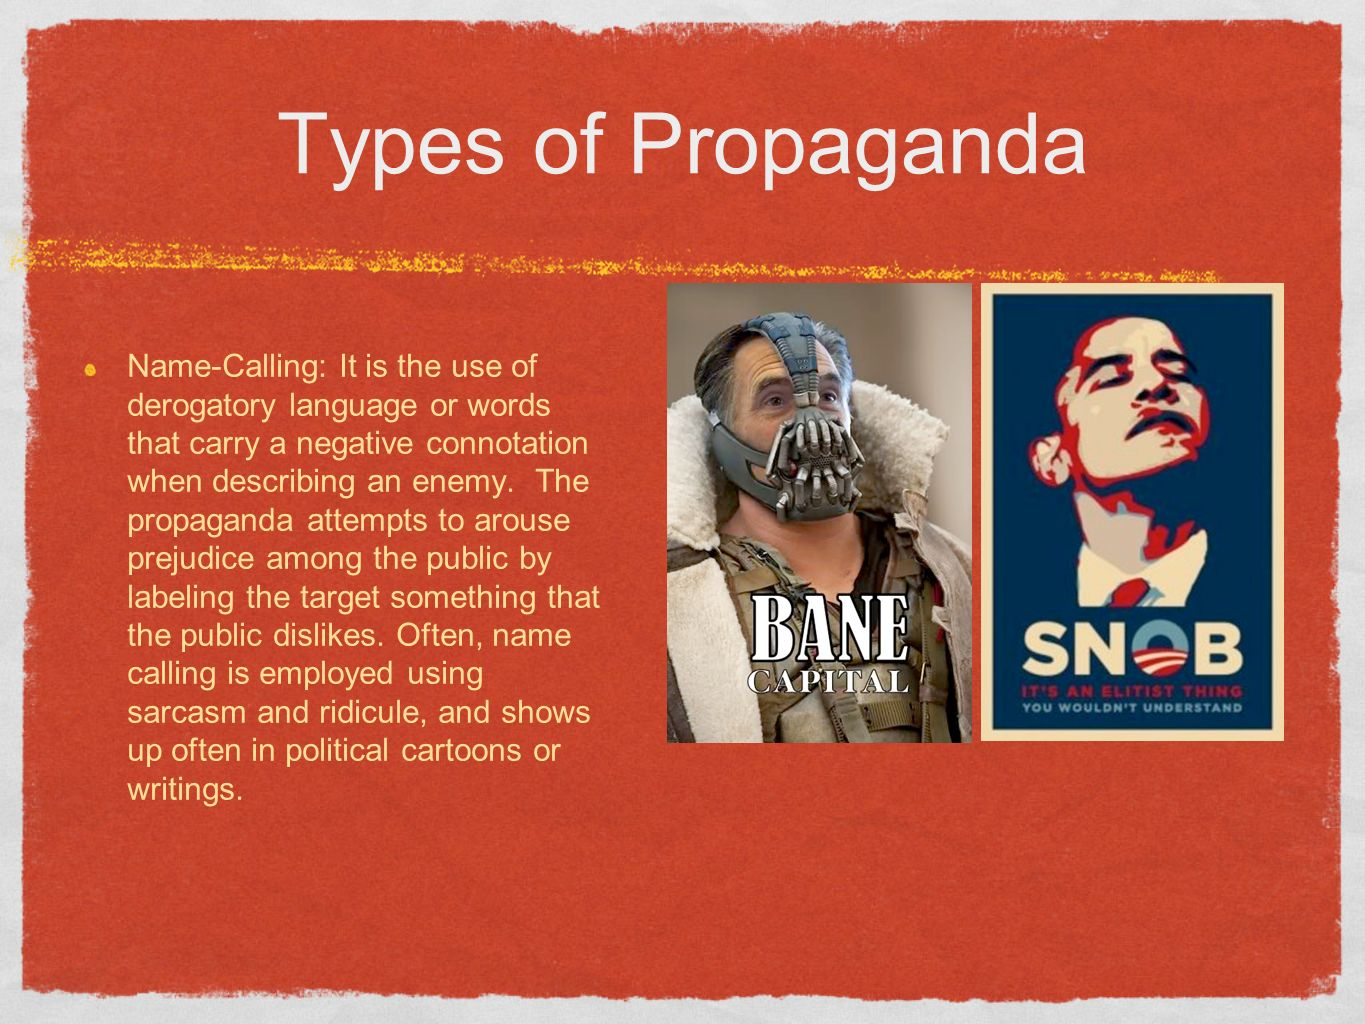 an analysis of how political propaganda is used as a deception Despite the importance of propaganda and psychological warfare to the war effort, the united states moved quickly to dismantle the propaganda apparatus it had constructed during world war ii.